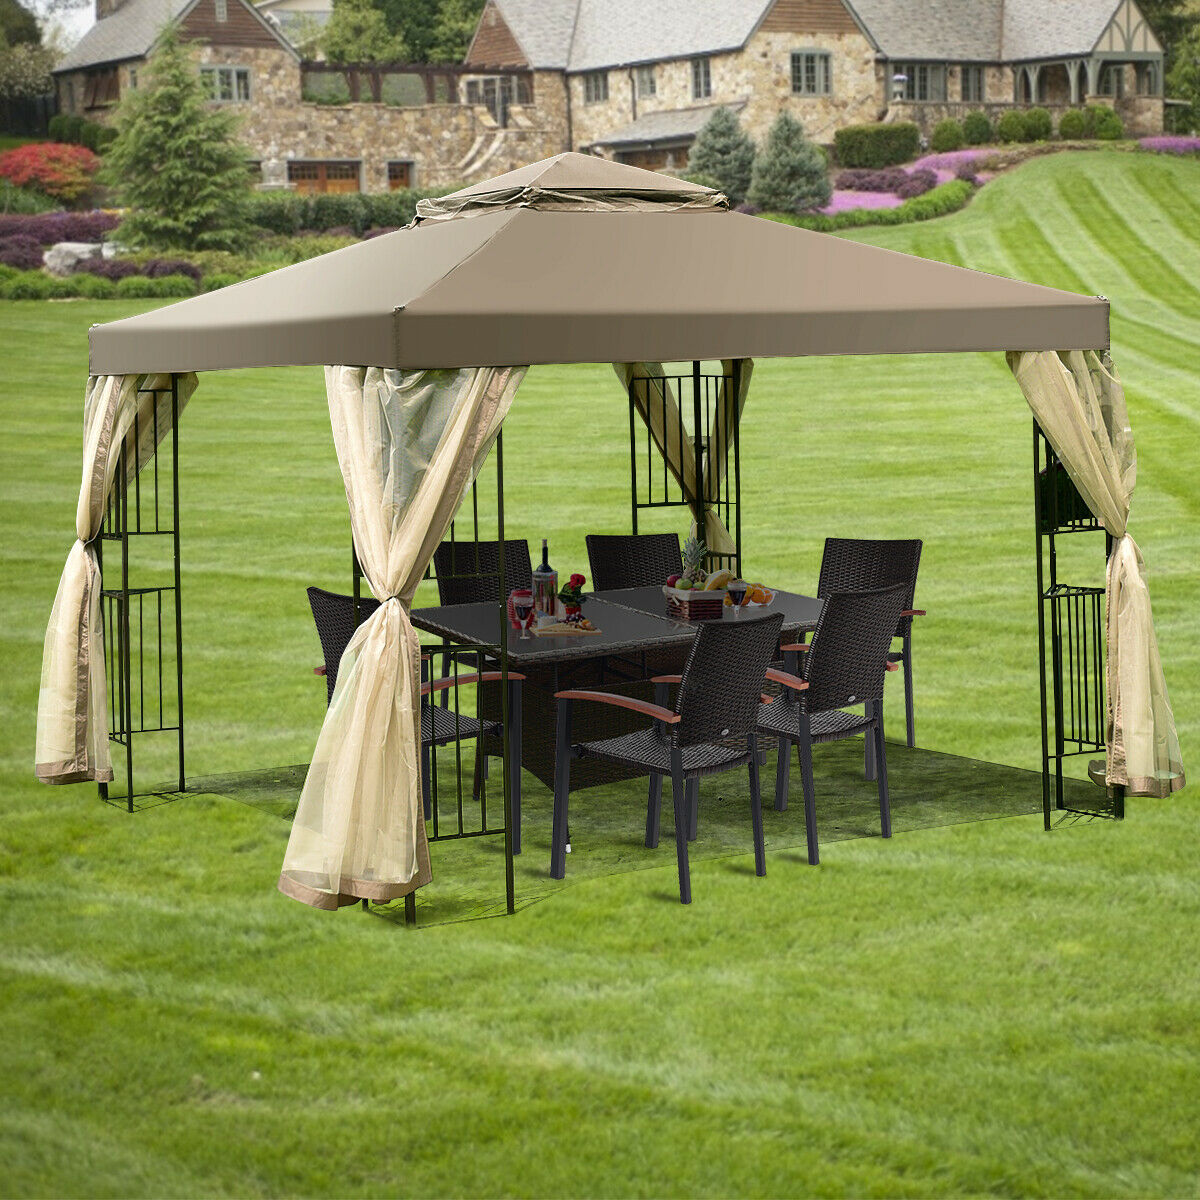 costway outdoor 10 x10 gazebo canopy shelter awning tent patio screw free structure garden